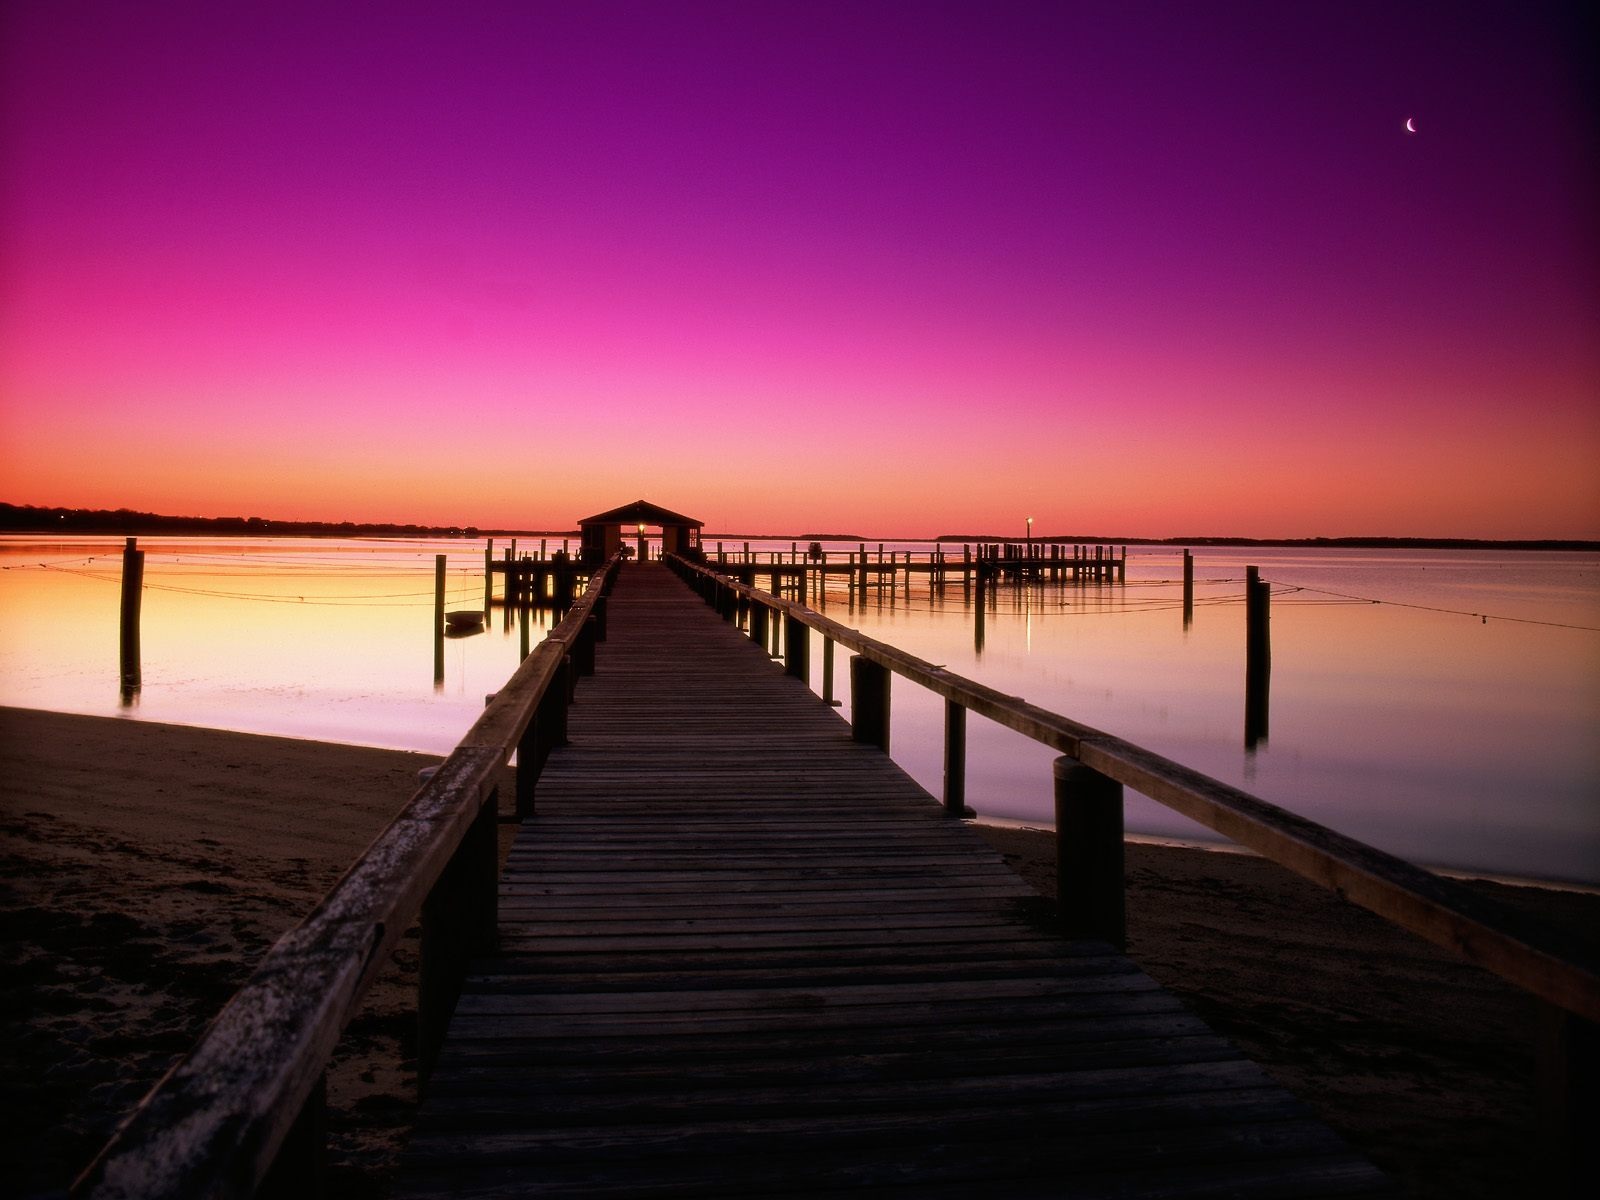 HD Quality Wallpaper   Collection: Artistic, 1600x1200 Tranquility